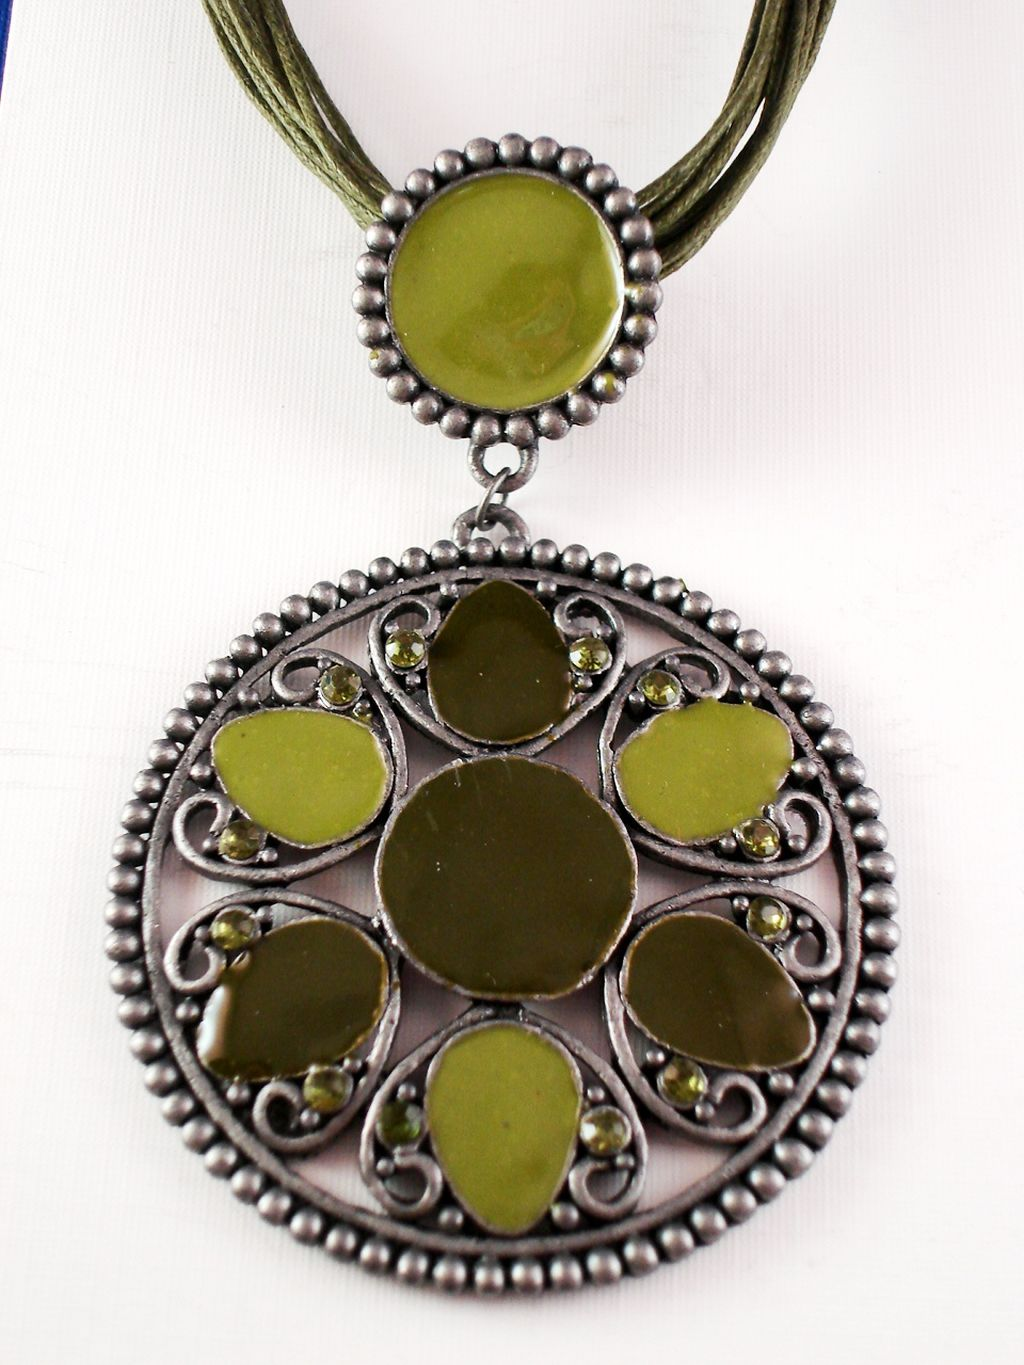 Green Circle Filigree Pendant Necklace, Flower w/ Crystals, Classic Style, Cotton Cord, European Fashion Jewelry